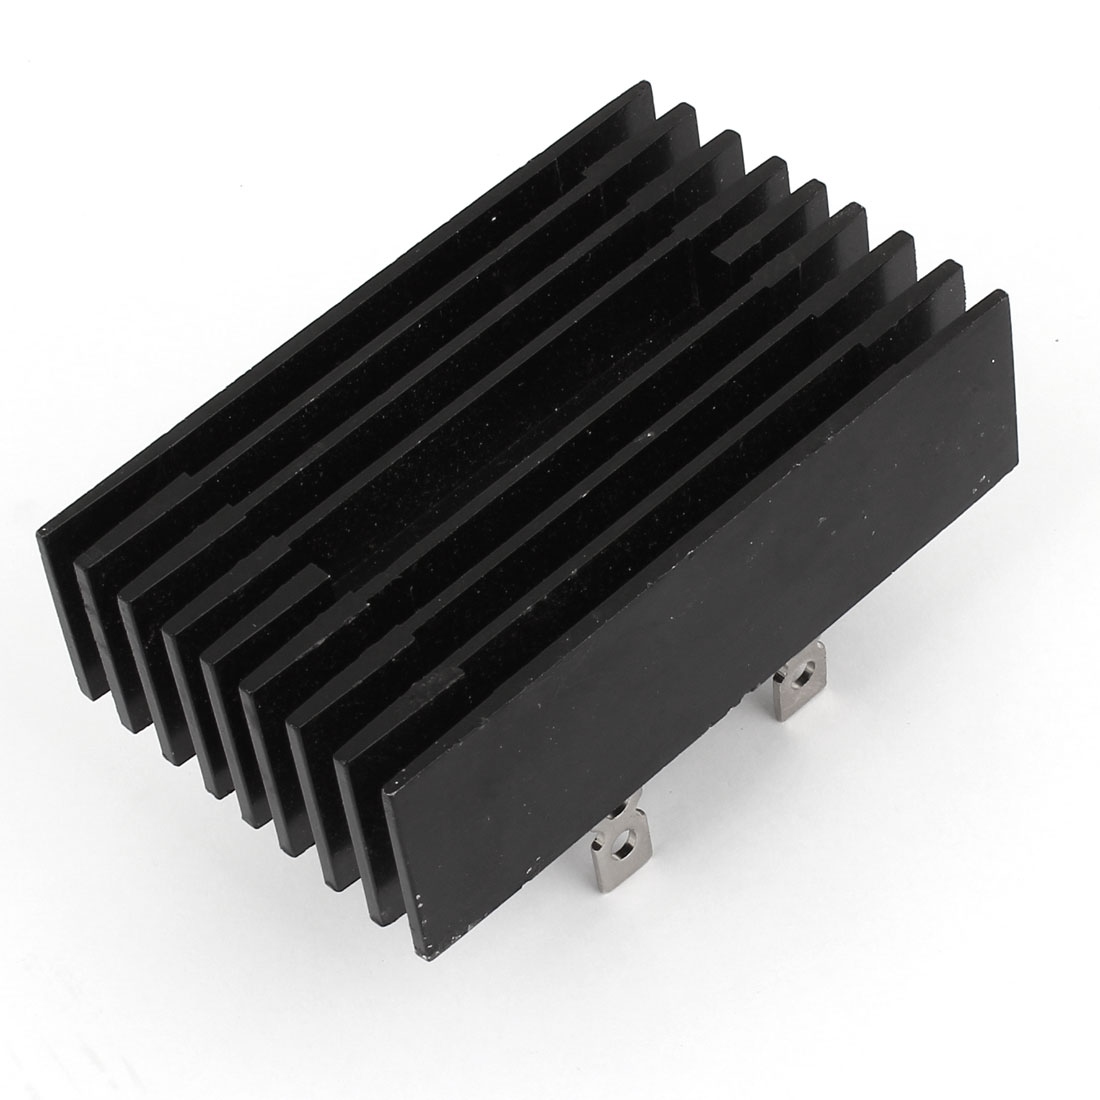 1200V 100A 4 Pin Terminal Single Phase Semi-Conductor Bridge Rectifier